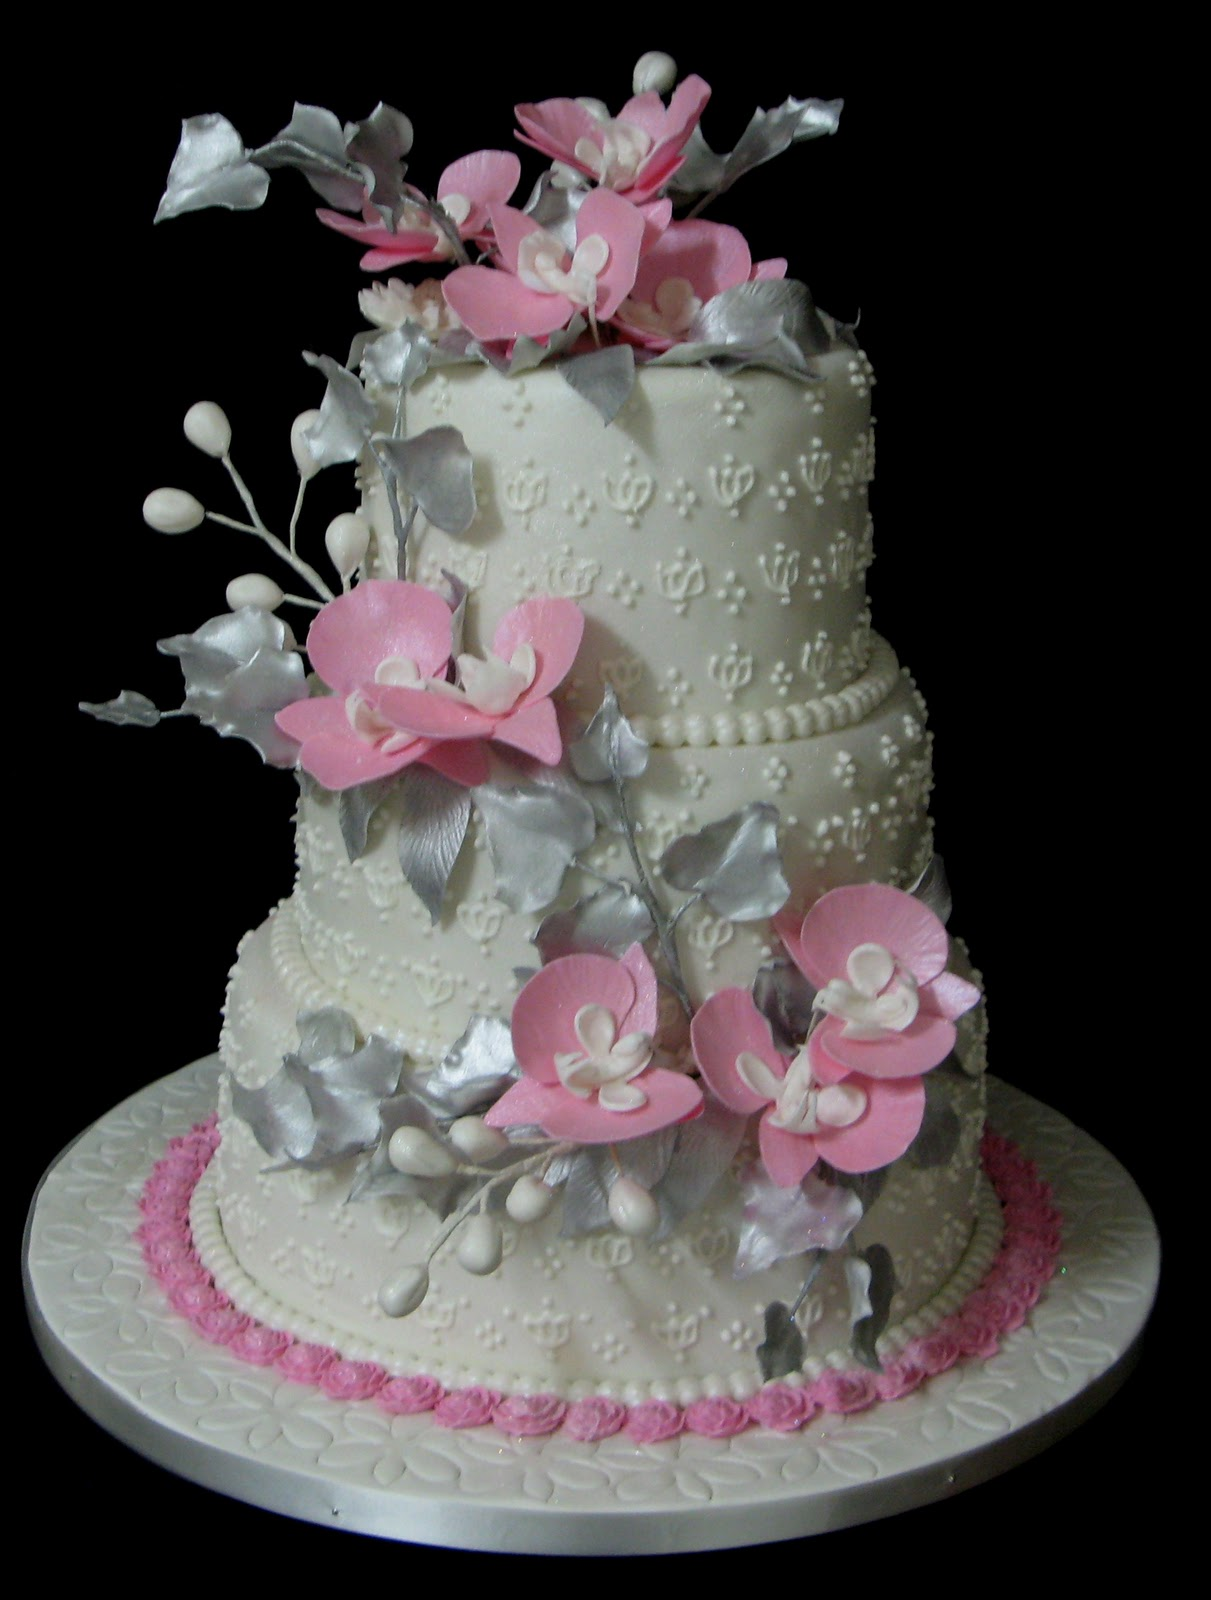 This Cake Was Made For A Bride From Gaborone Whose Wedding Theme Sliver Pink And White Quite Learning Curve On Balancing The Flowers Leaves